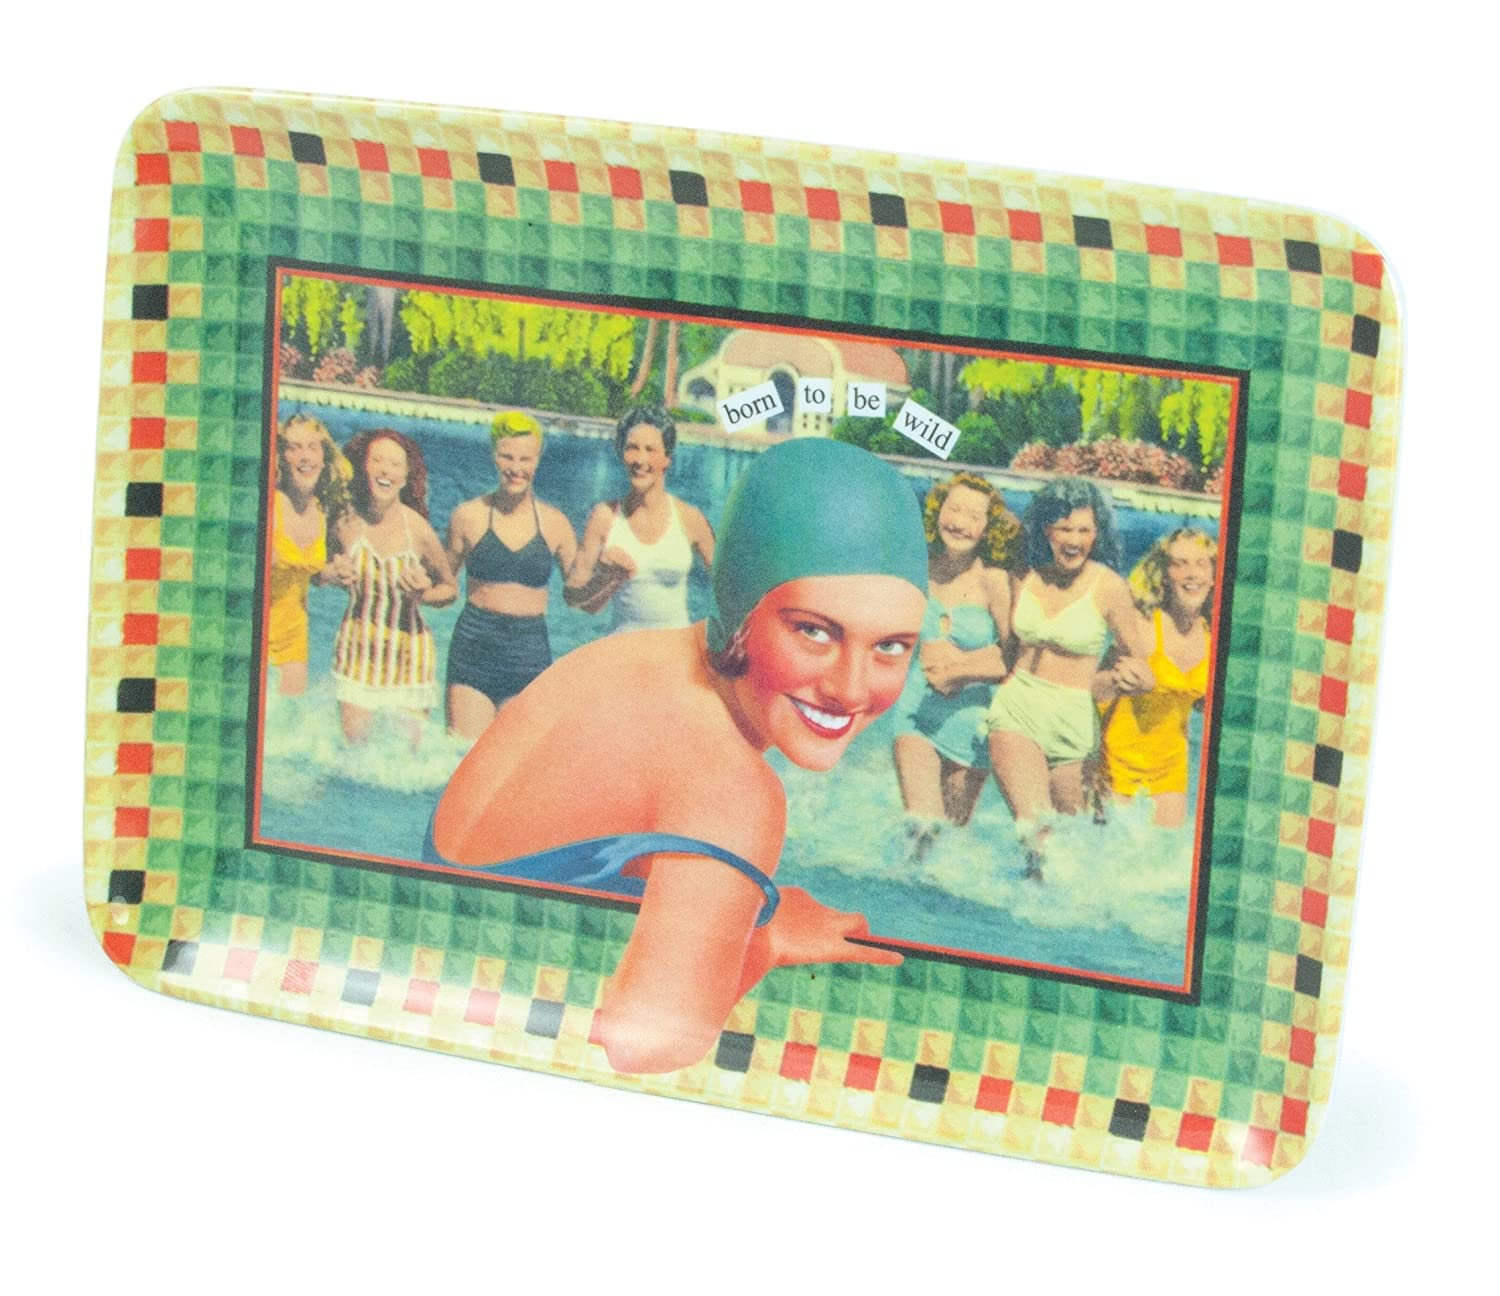 Born to Be Wild Anne Taintor Melamine Tray